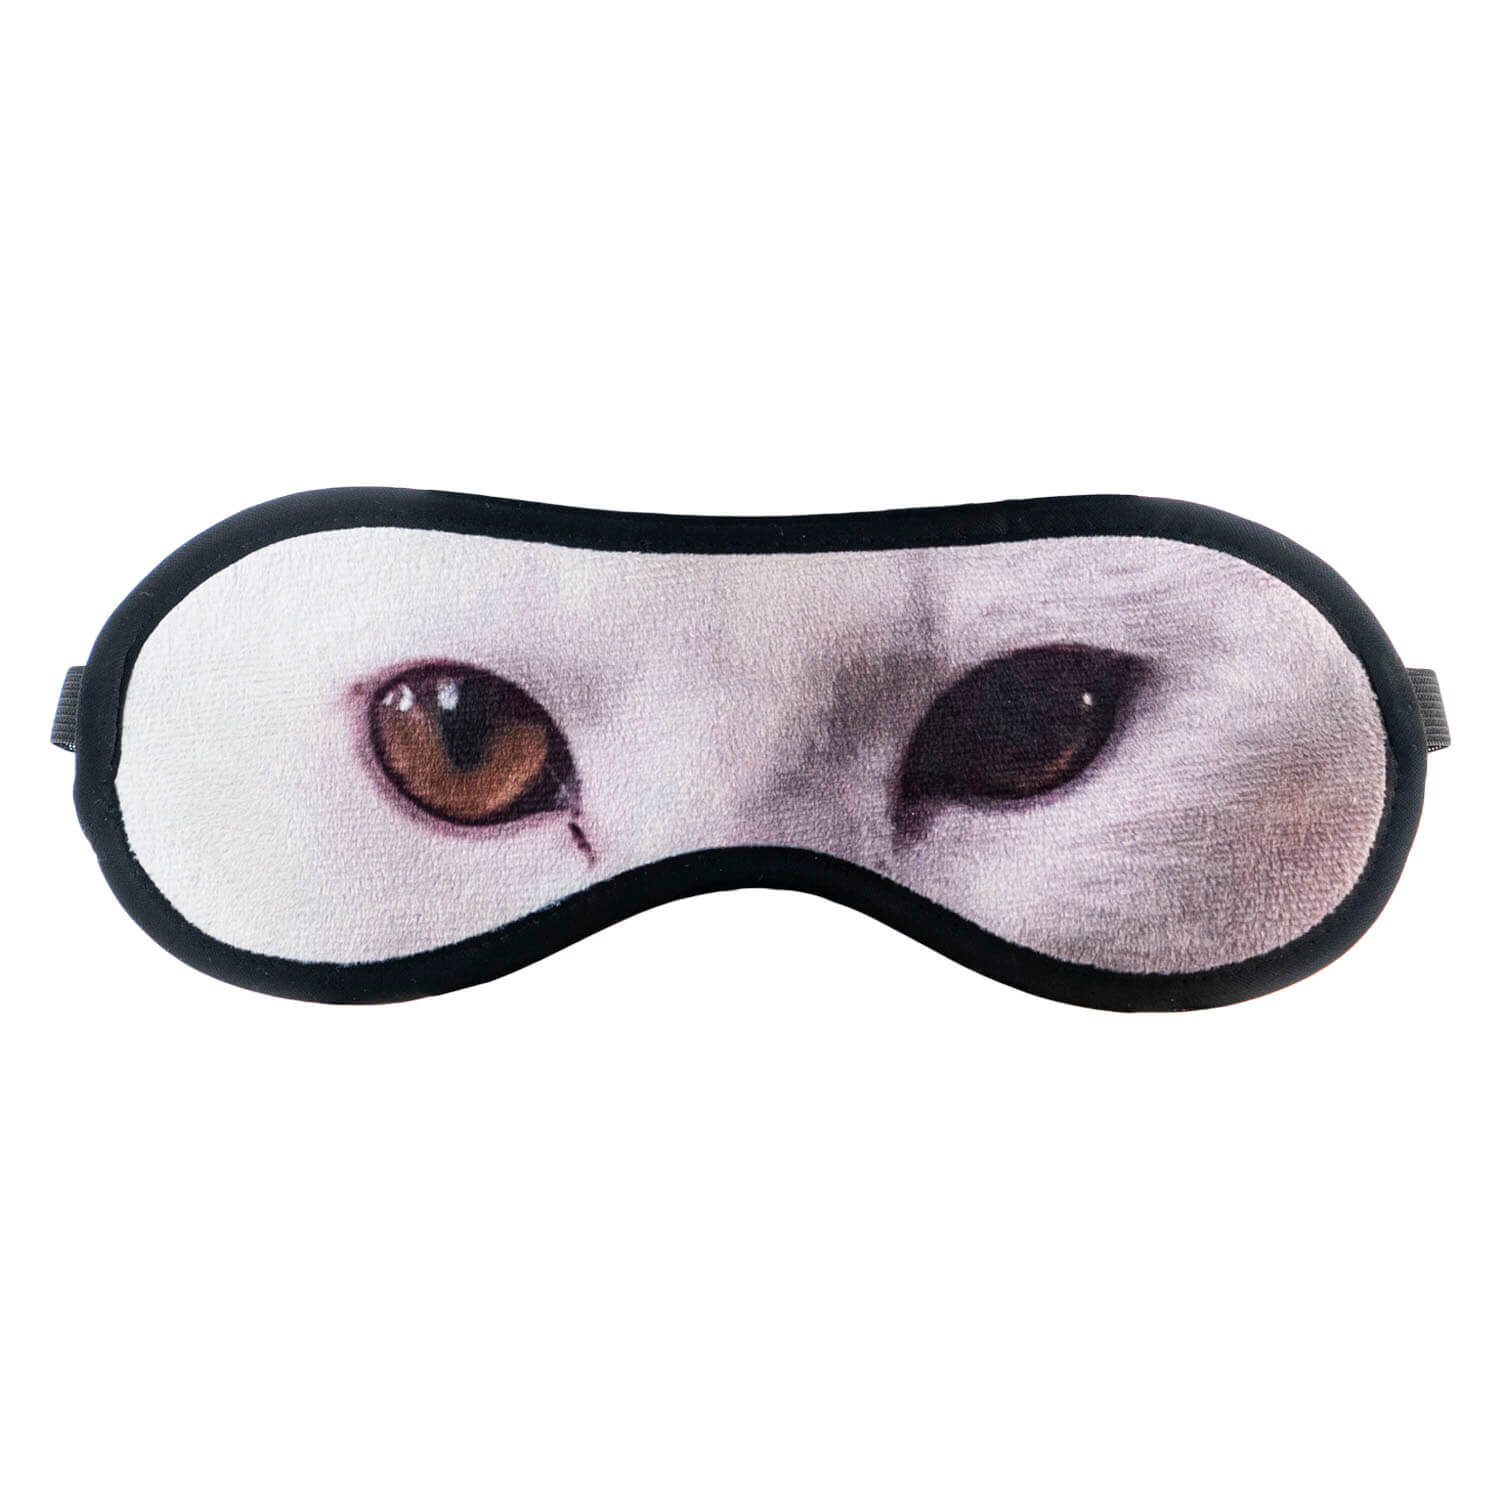 Personalized Pet Sleeping Mask (2149788647481)